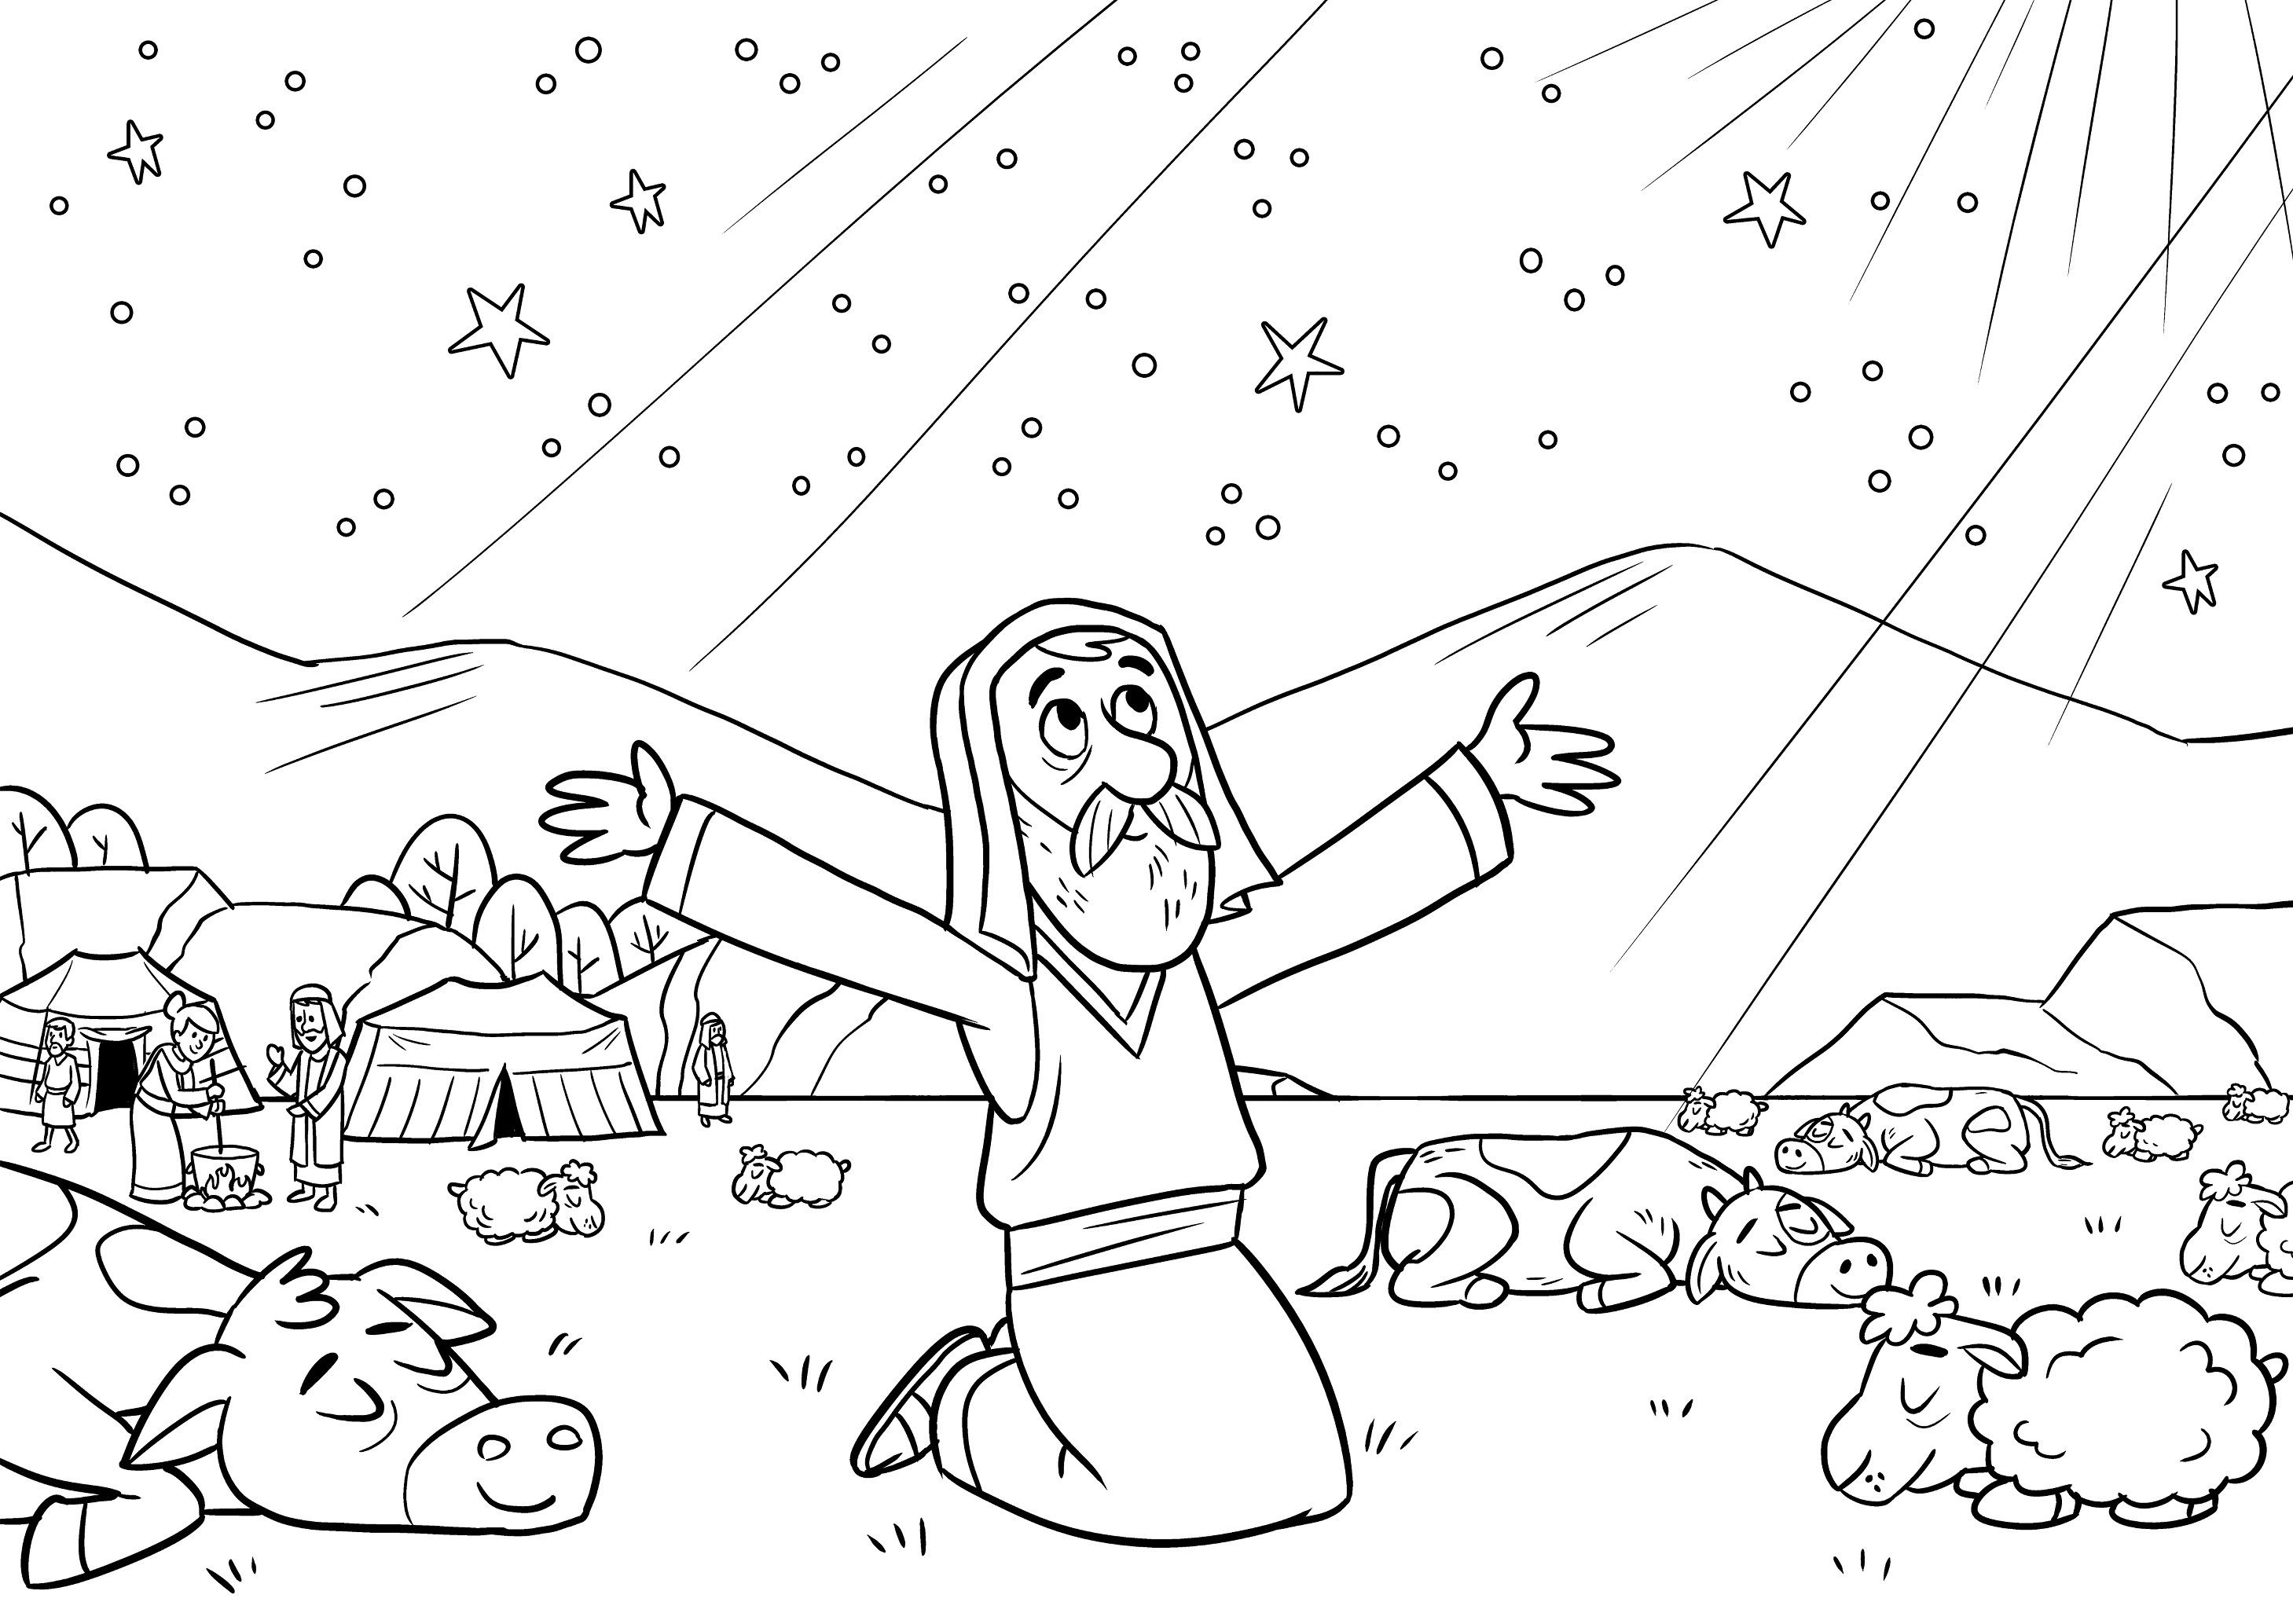 bible with coloring pages bible story coloring pages summer 2019 illustrated pages with coloring bible